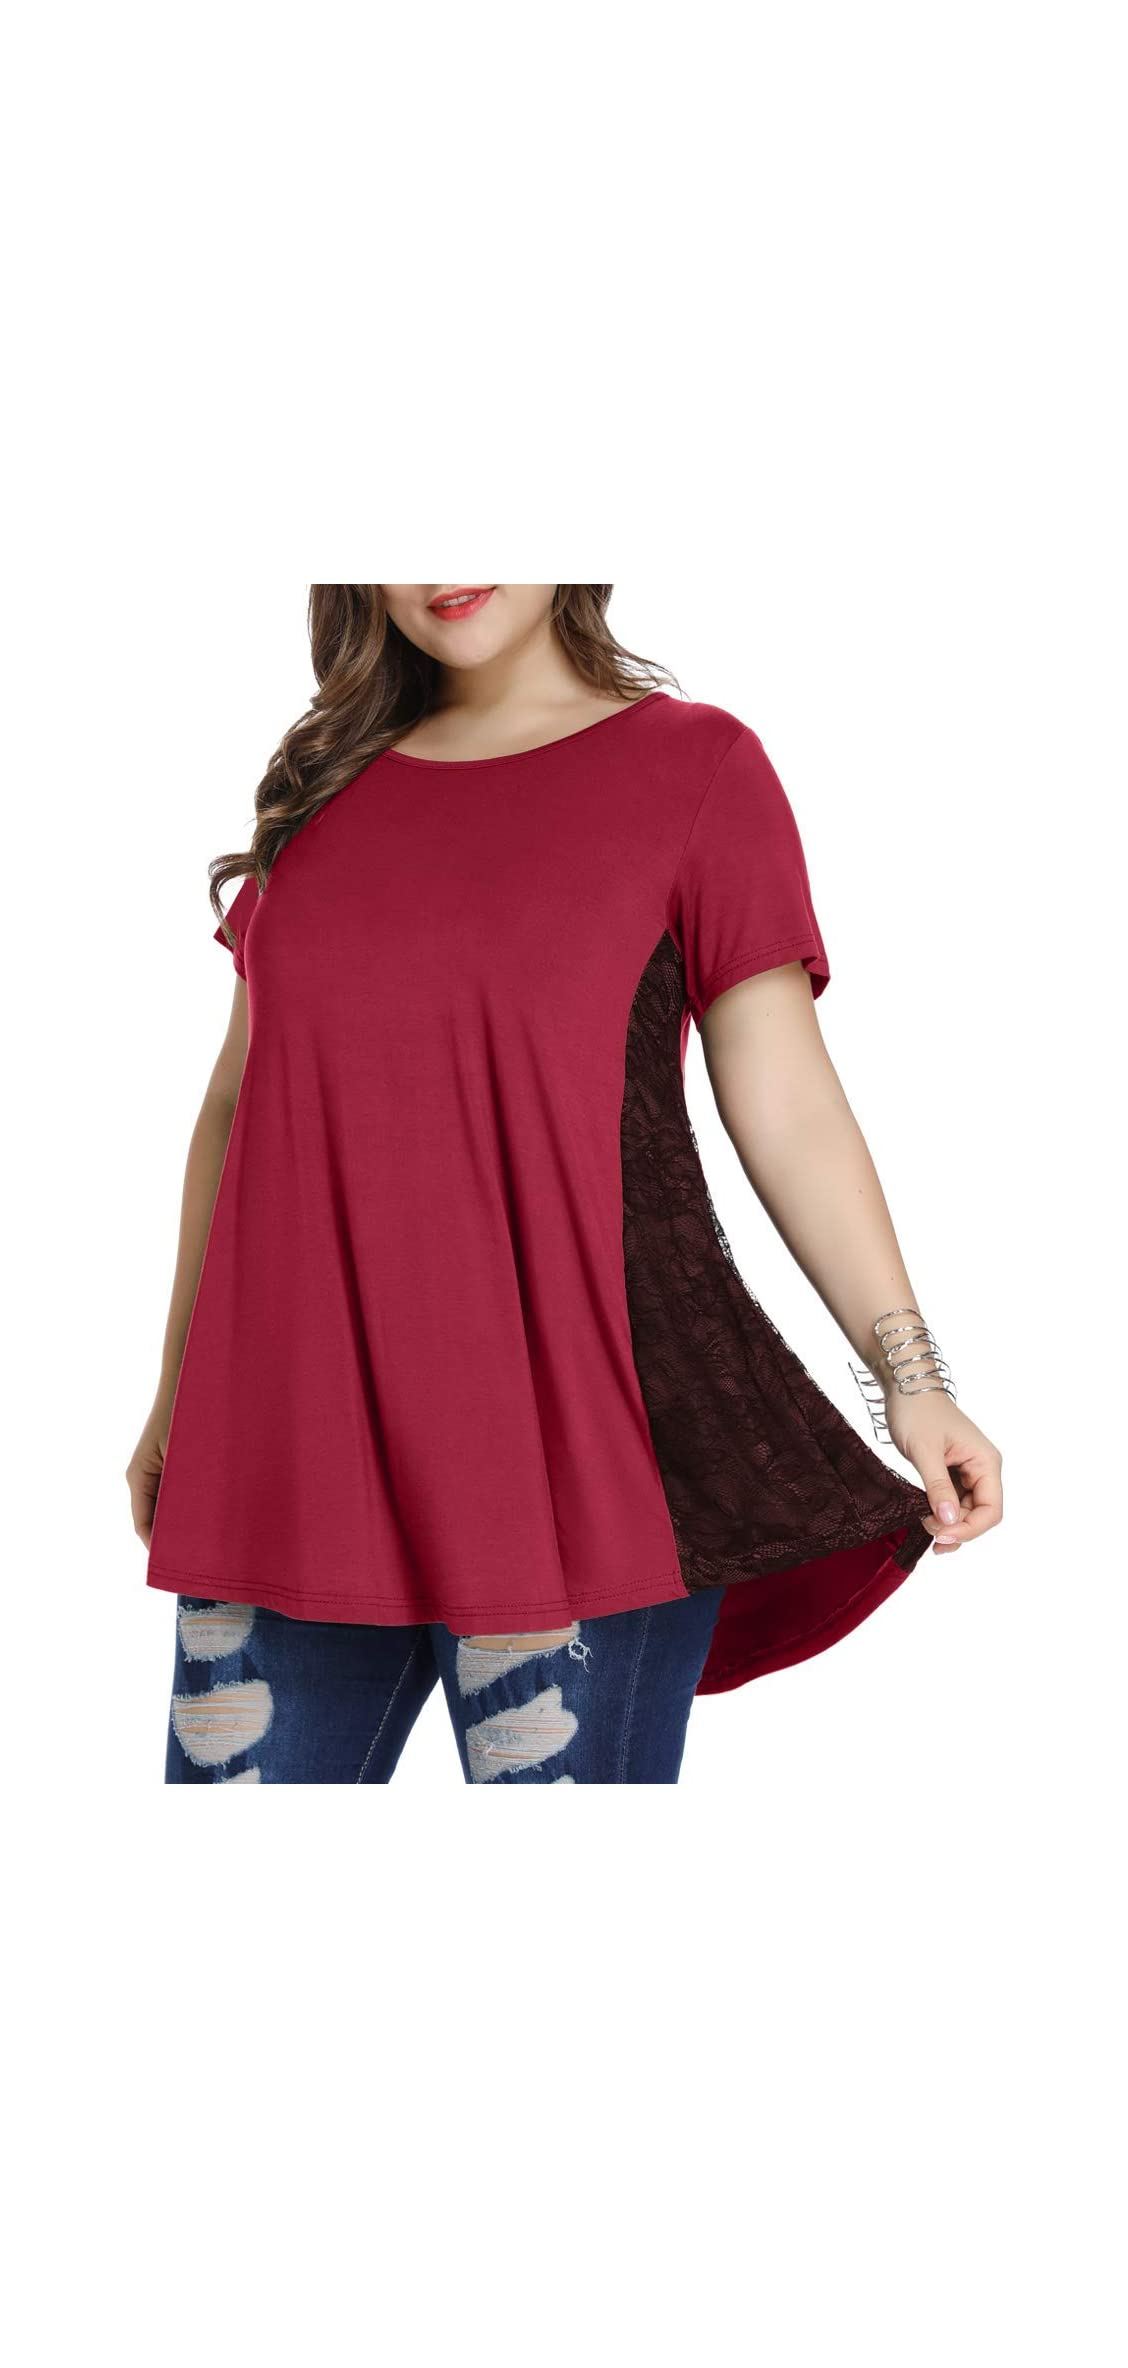 Women Lace Tunic Top Short Sleeve Flare T Shirt For